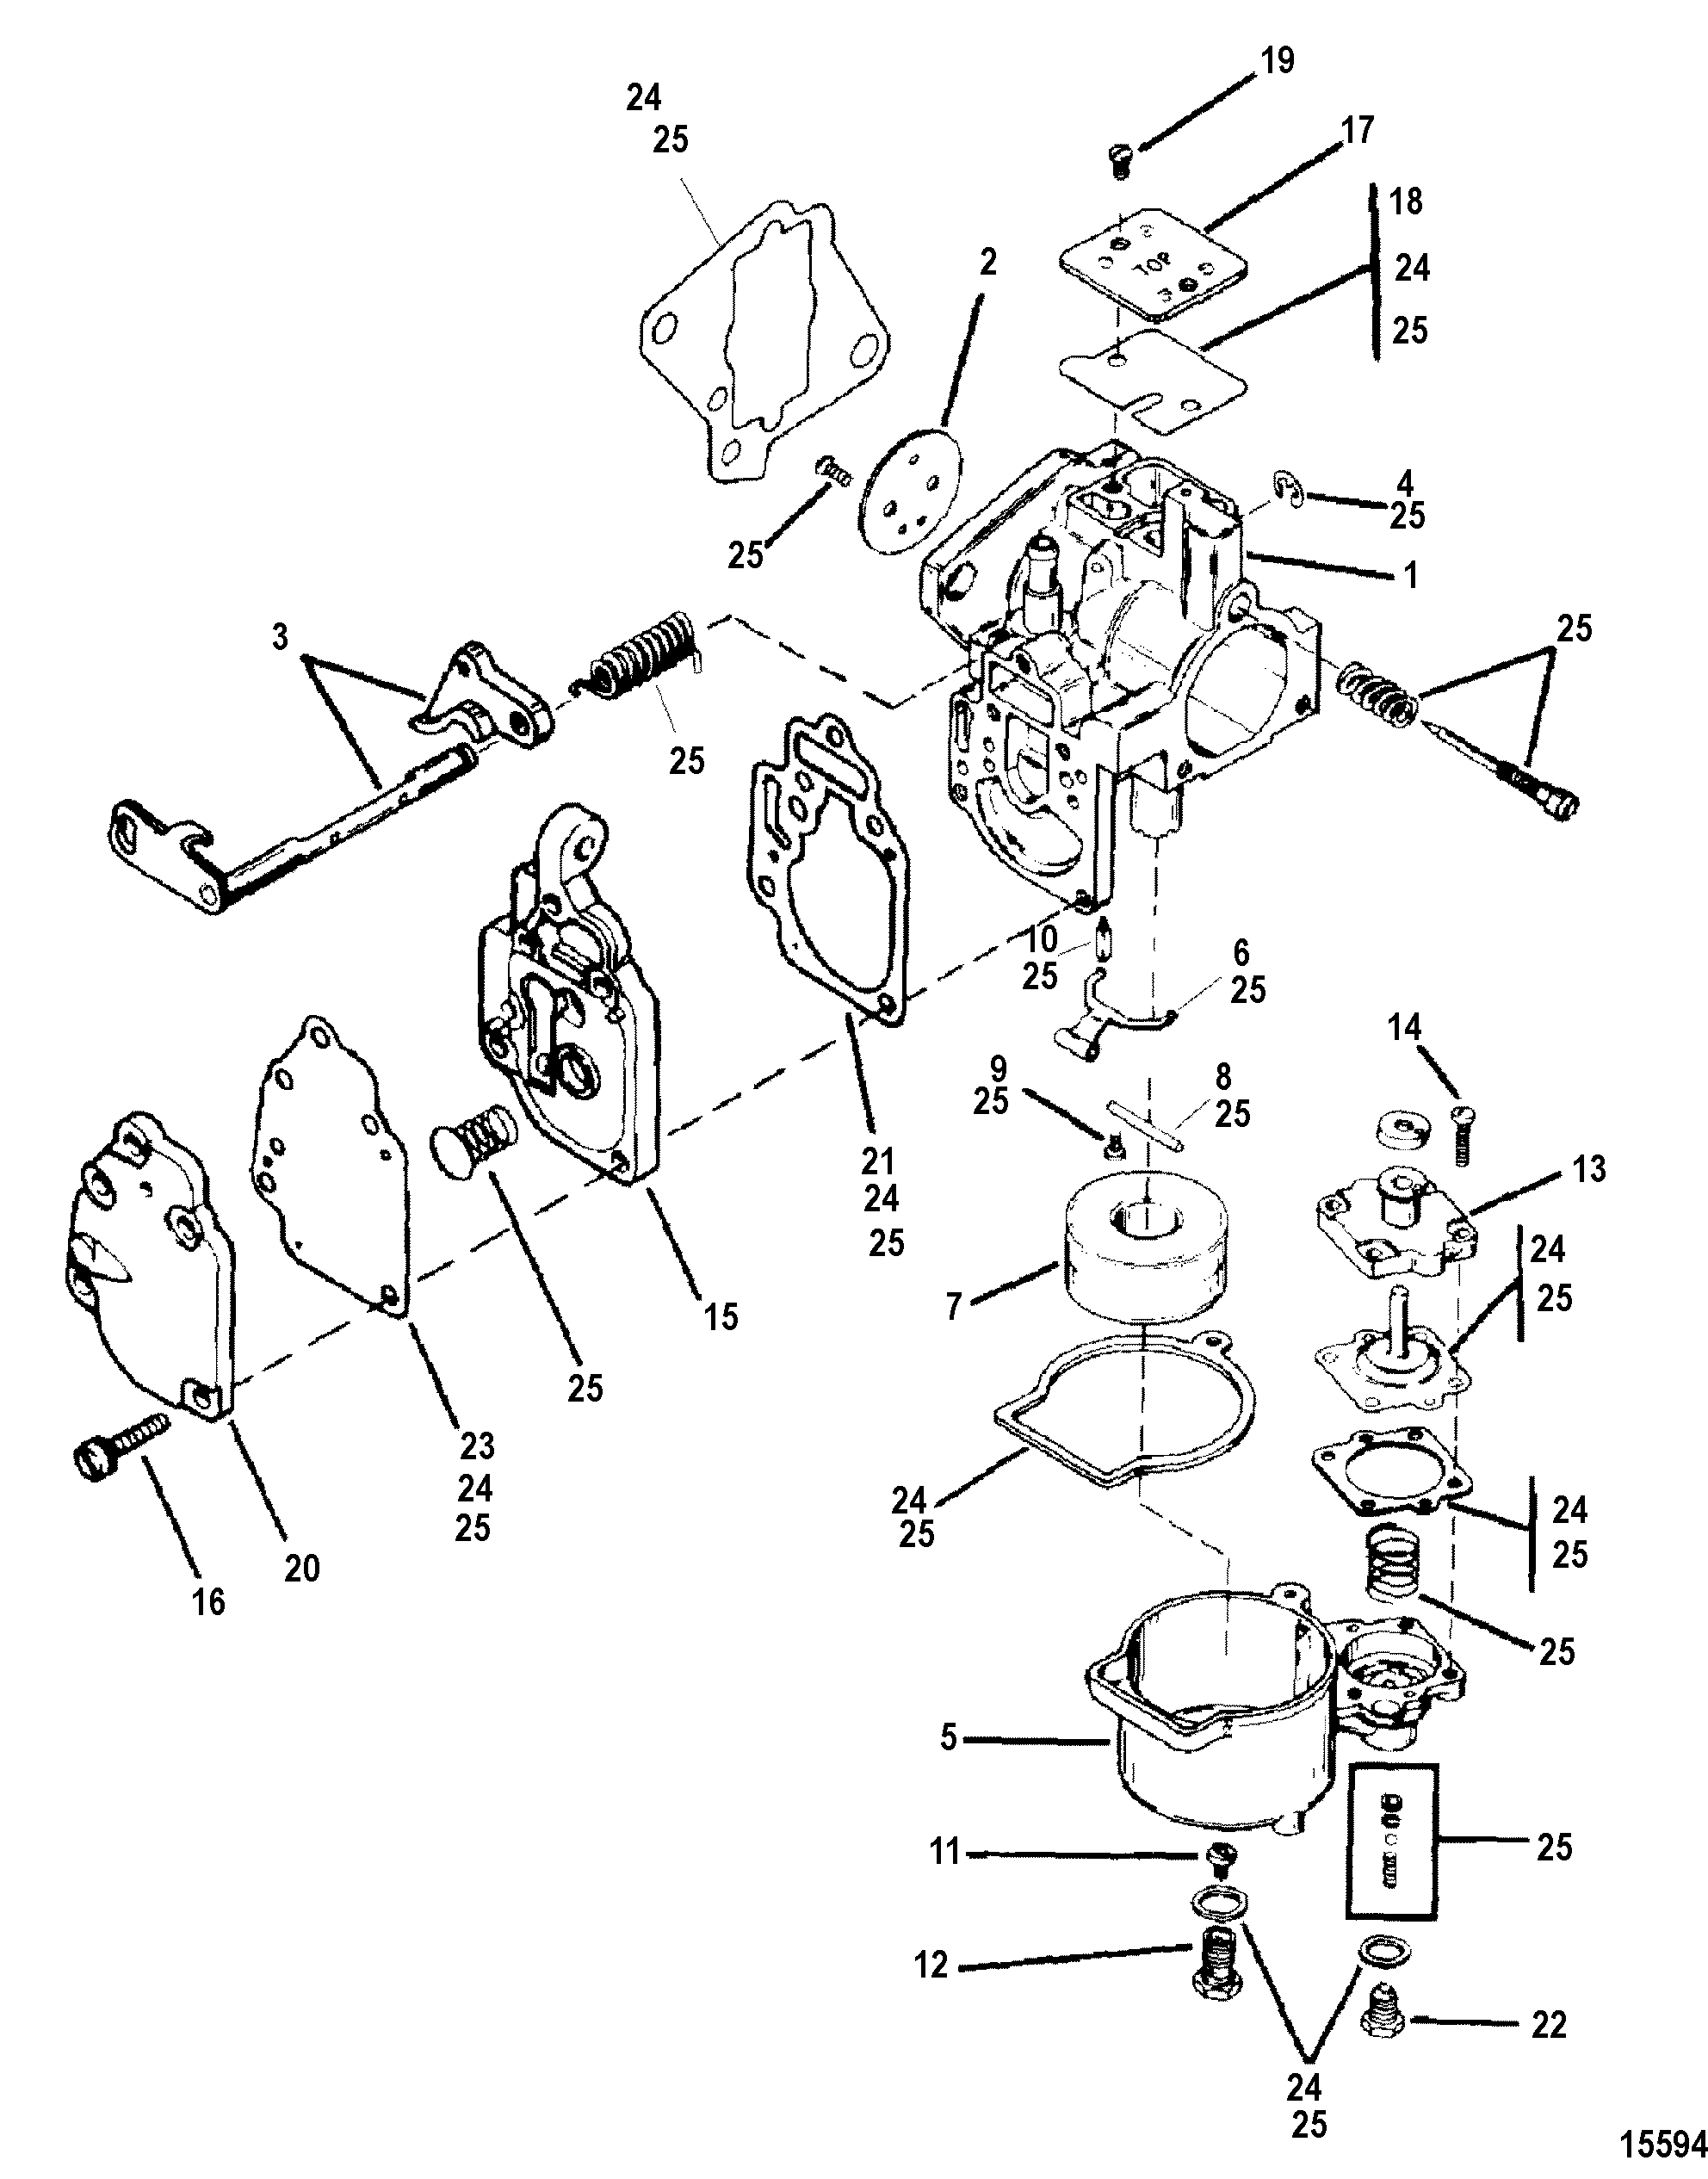 1986 Sportster Wiring Diagram Data Diagrams Harley Carburetor Assembly For Mariner Mercury 8 9 13 5 15 2 883 Davidson 1100